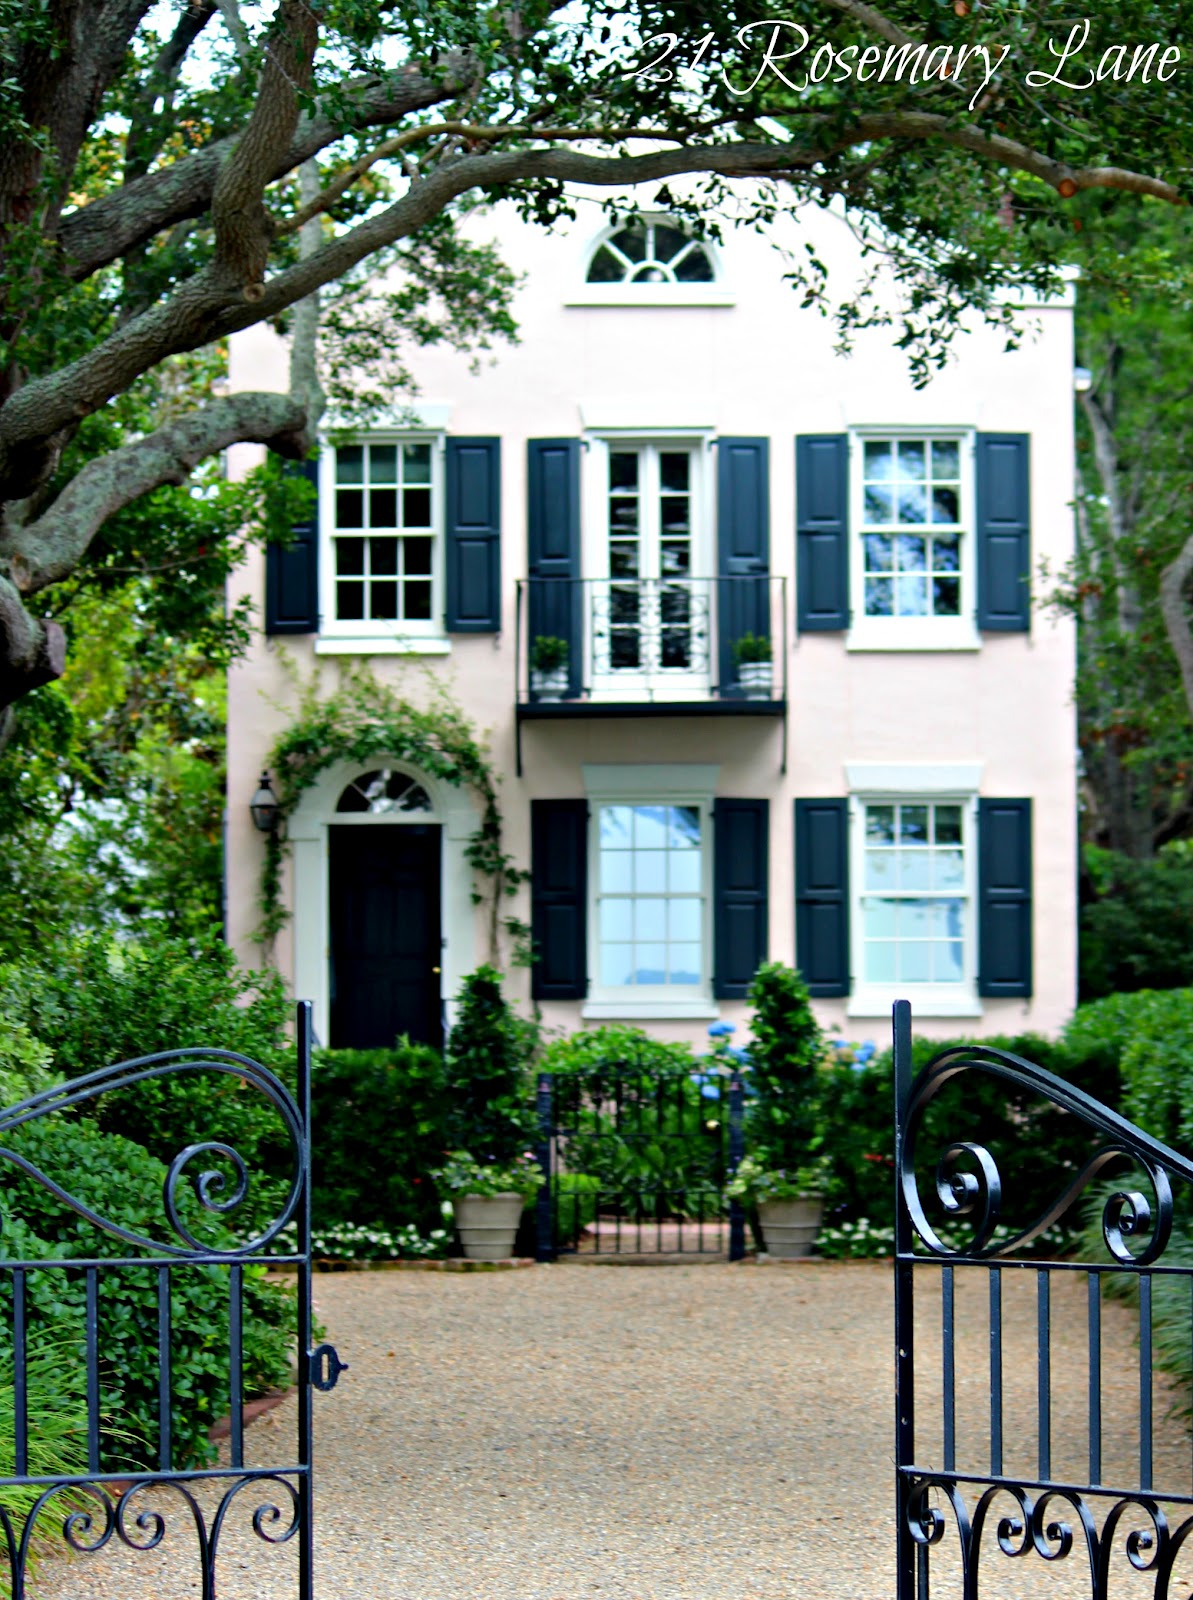 21 rosemary lane charleston south carolina for Classic house exterior